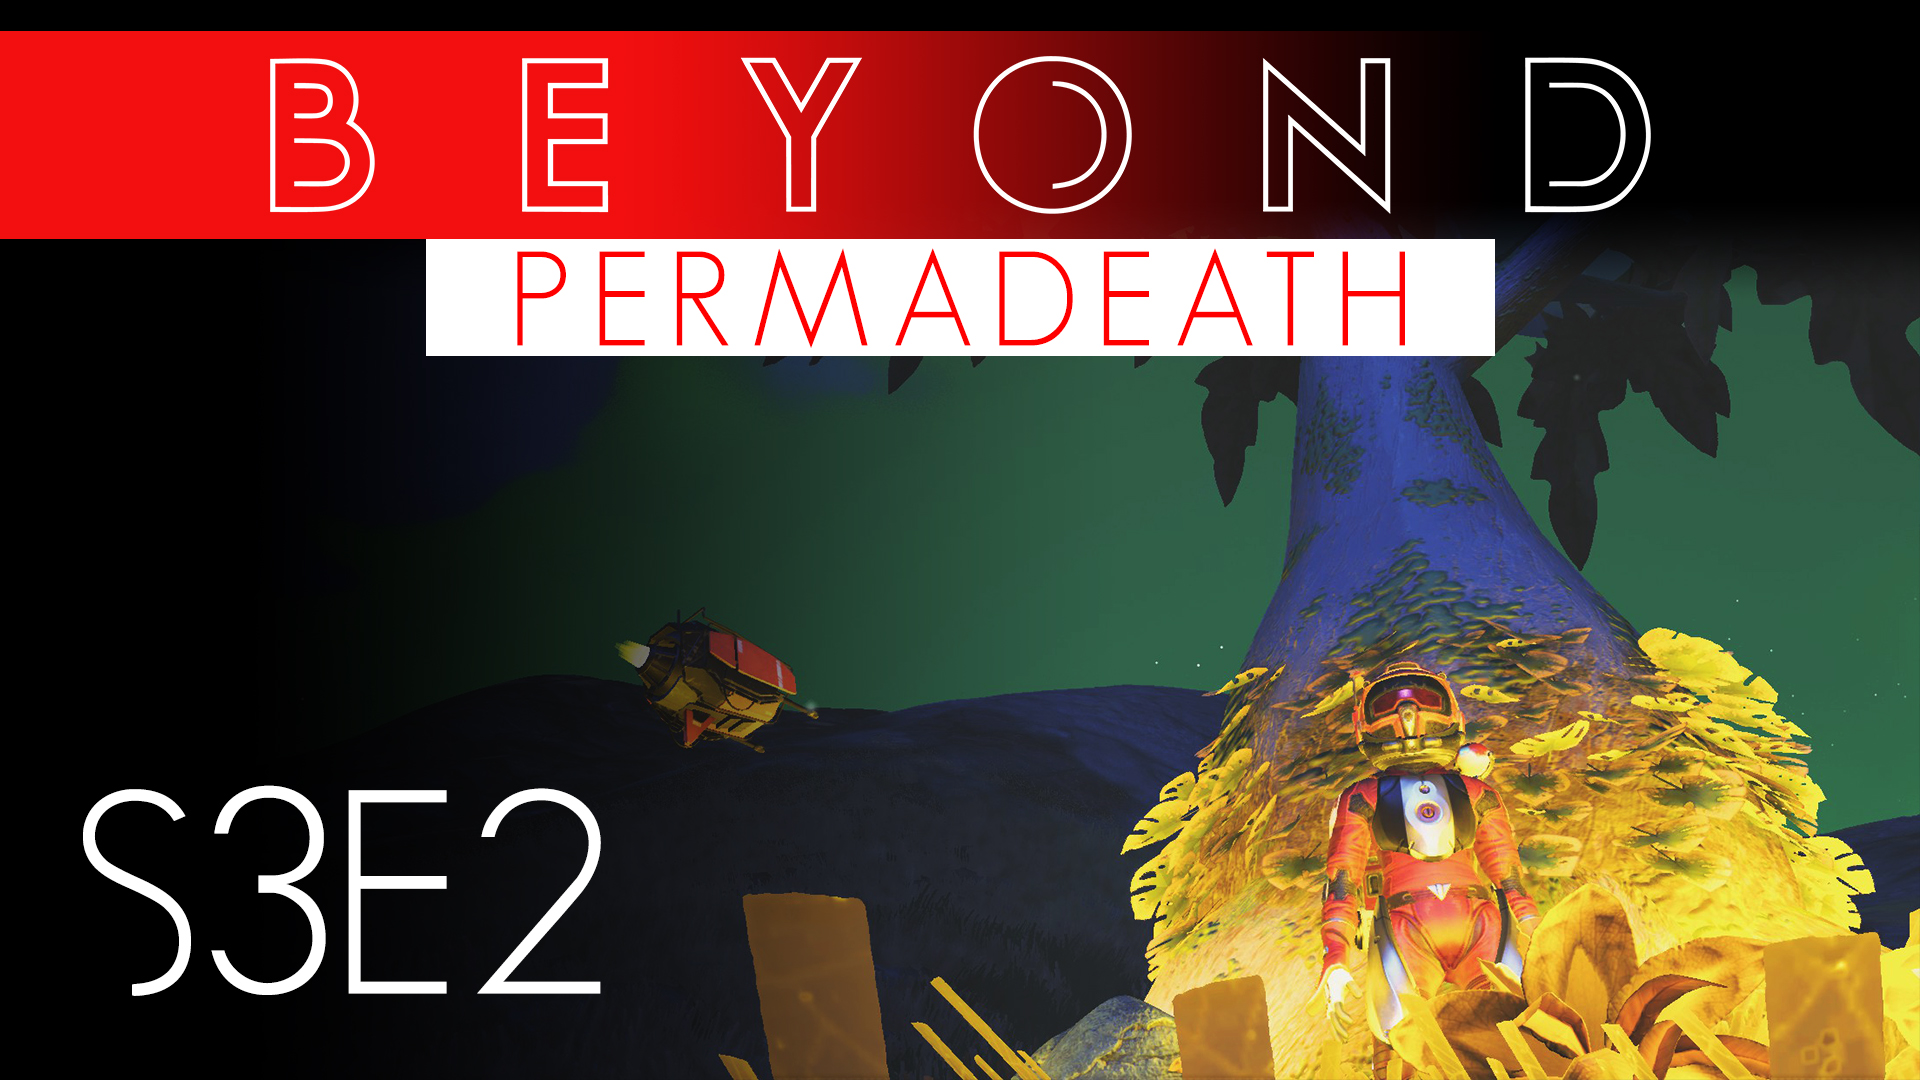 No Man's Sky Beyond Permadeath S3E2 - Risky Salvage Mission - Xaine's World NMS WEB Thumbnail